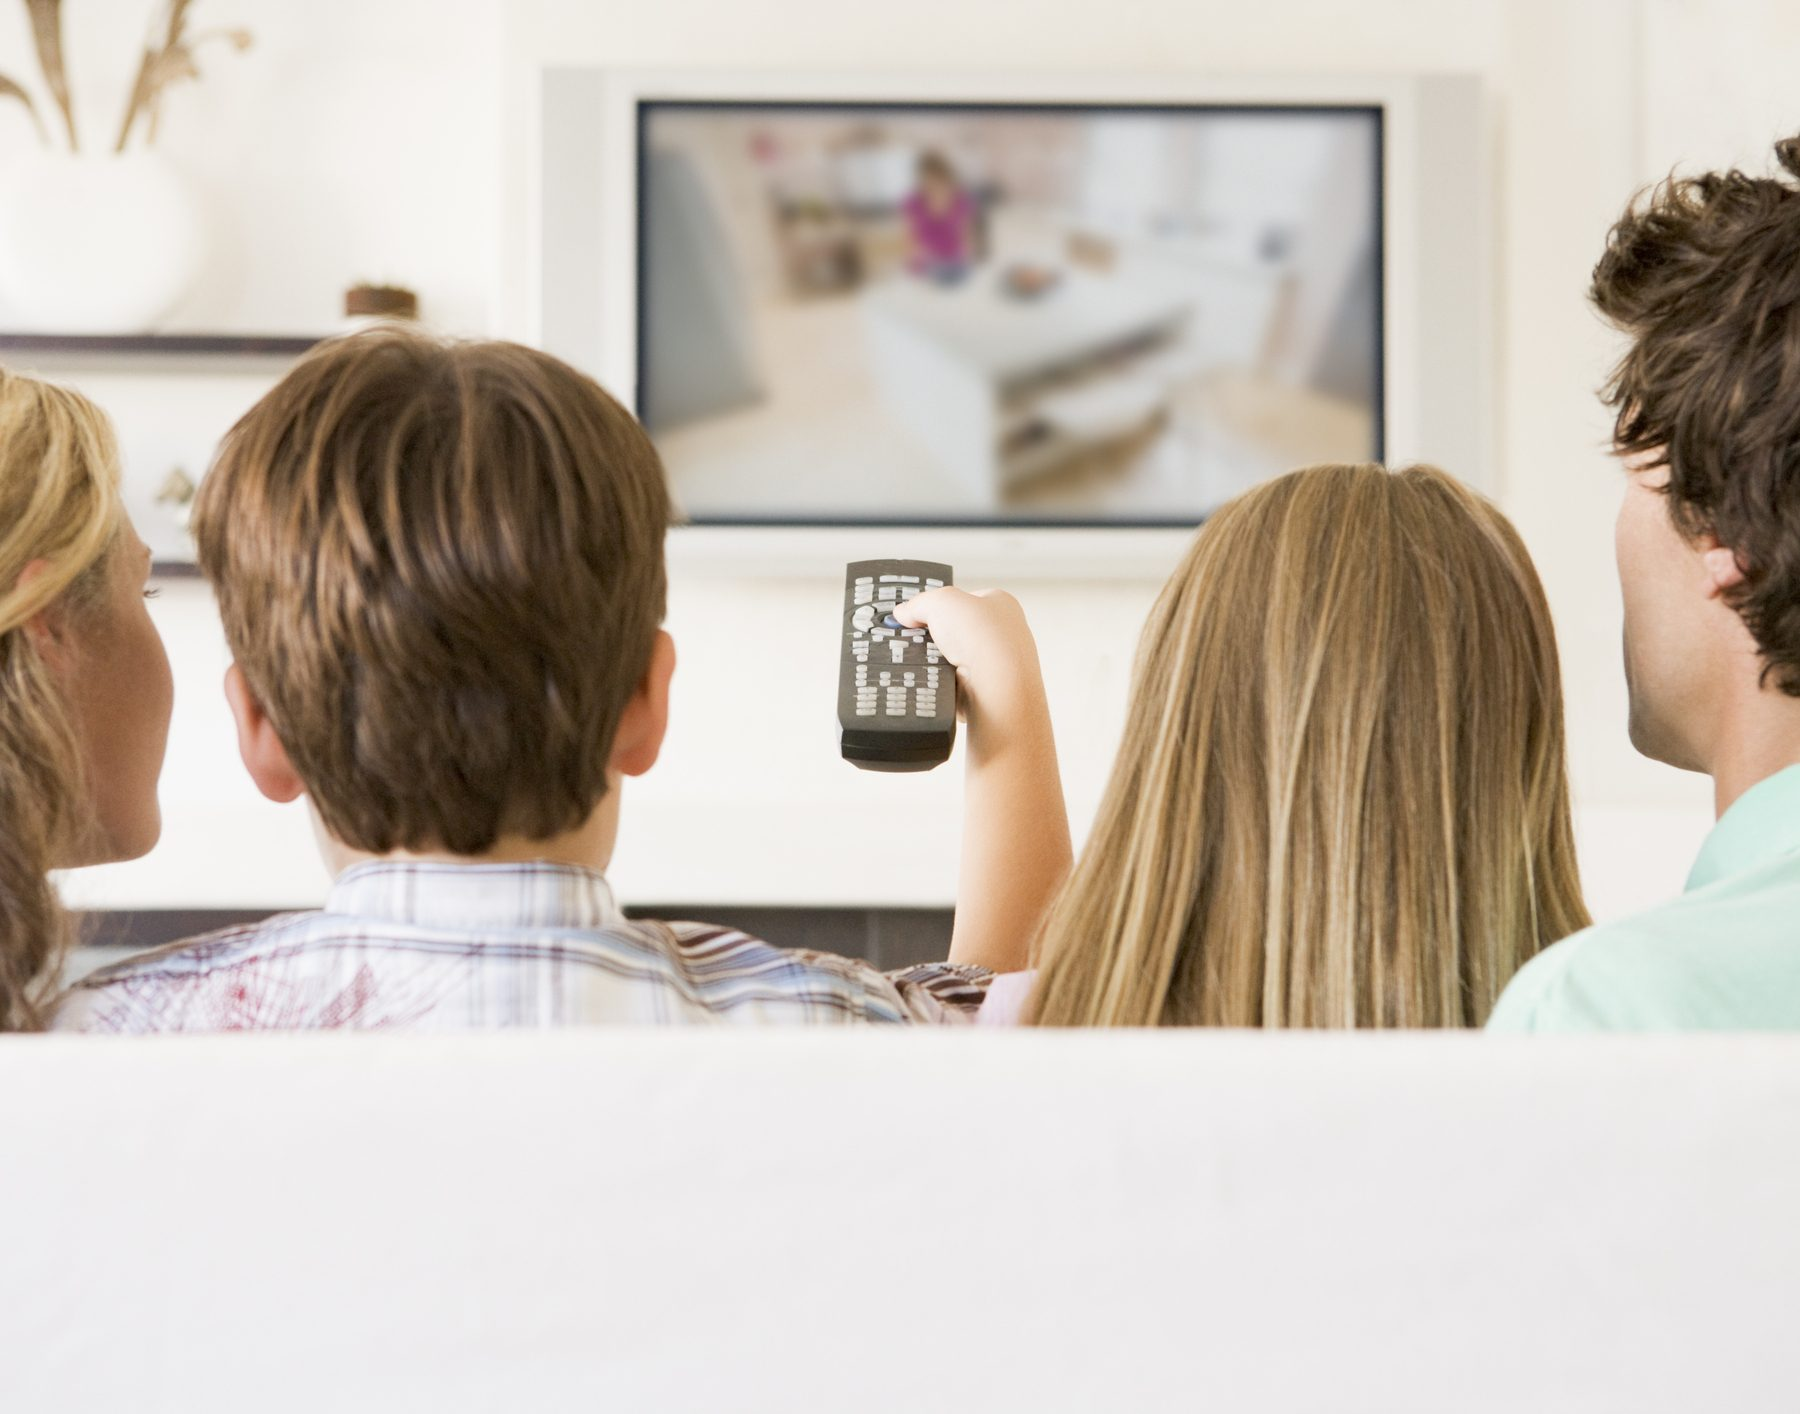 Family in living room with remote control and flat screen television